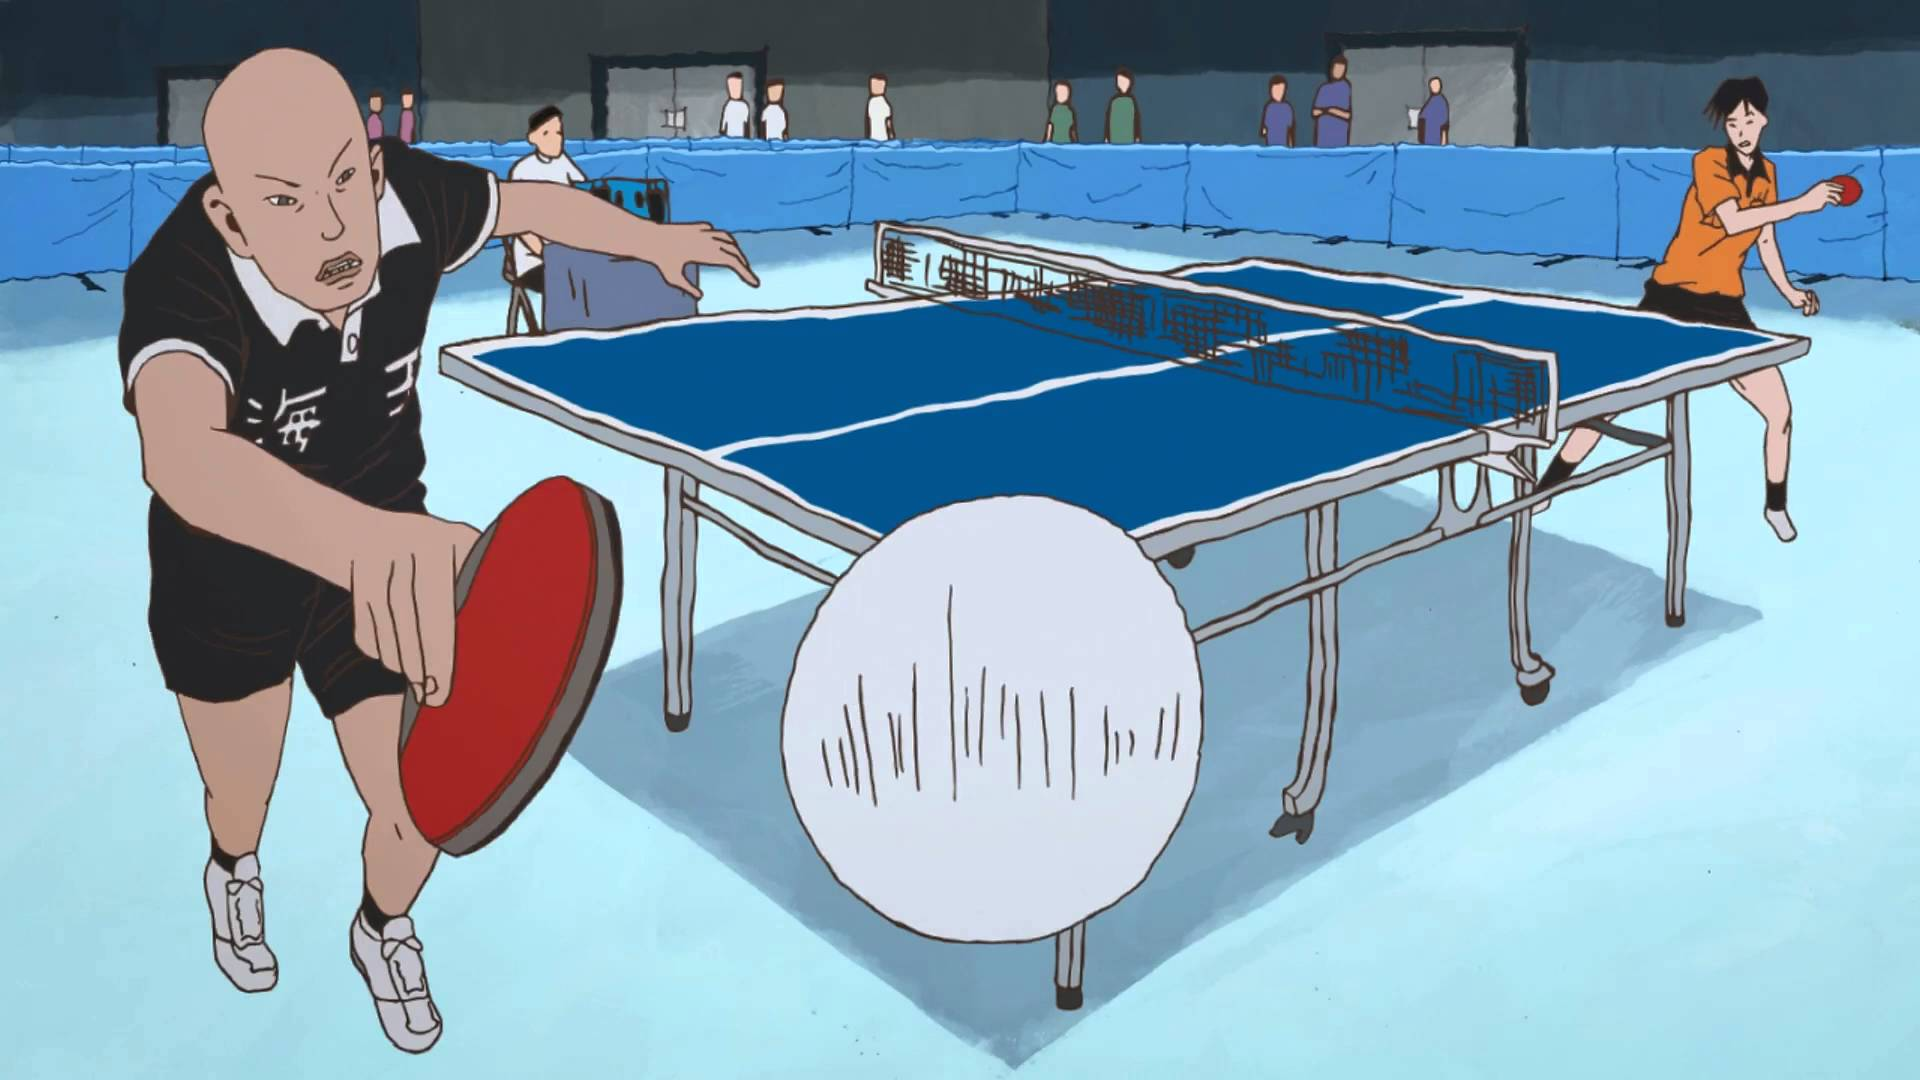 More Wallpaper Collections Imagenes Ping Pong Hd 1471145 Hd